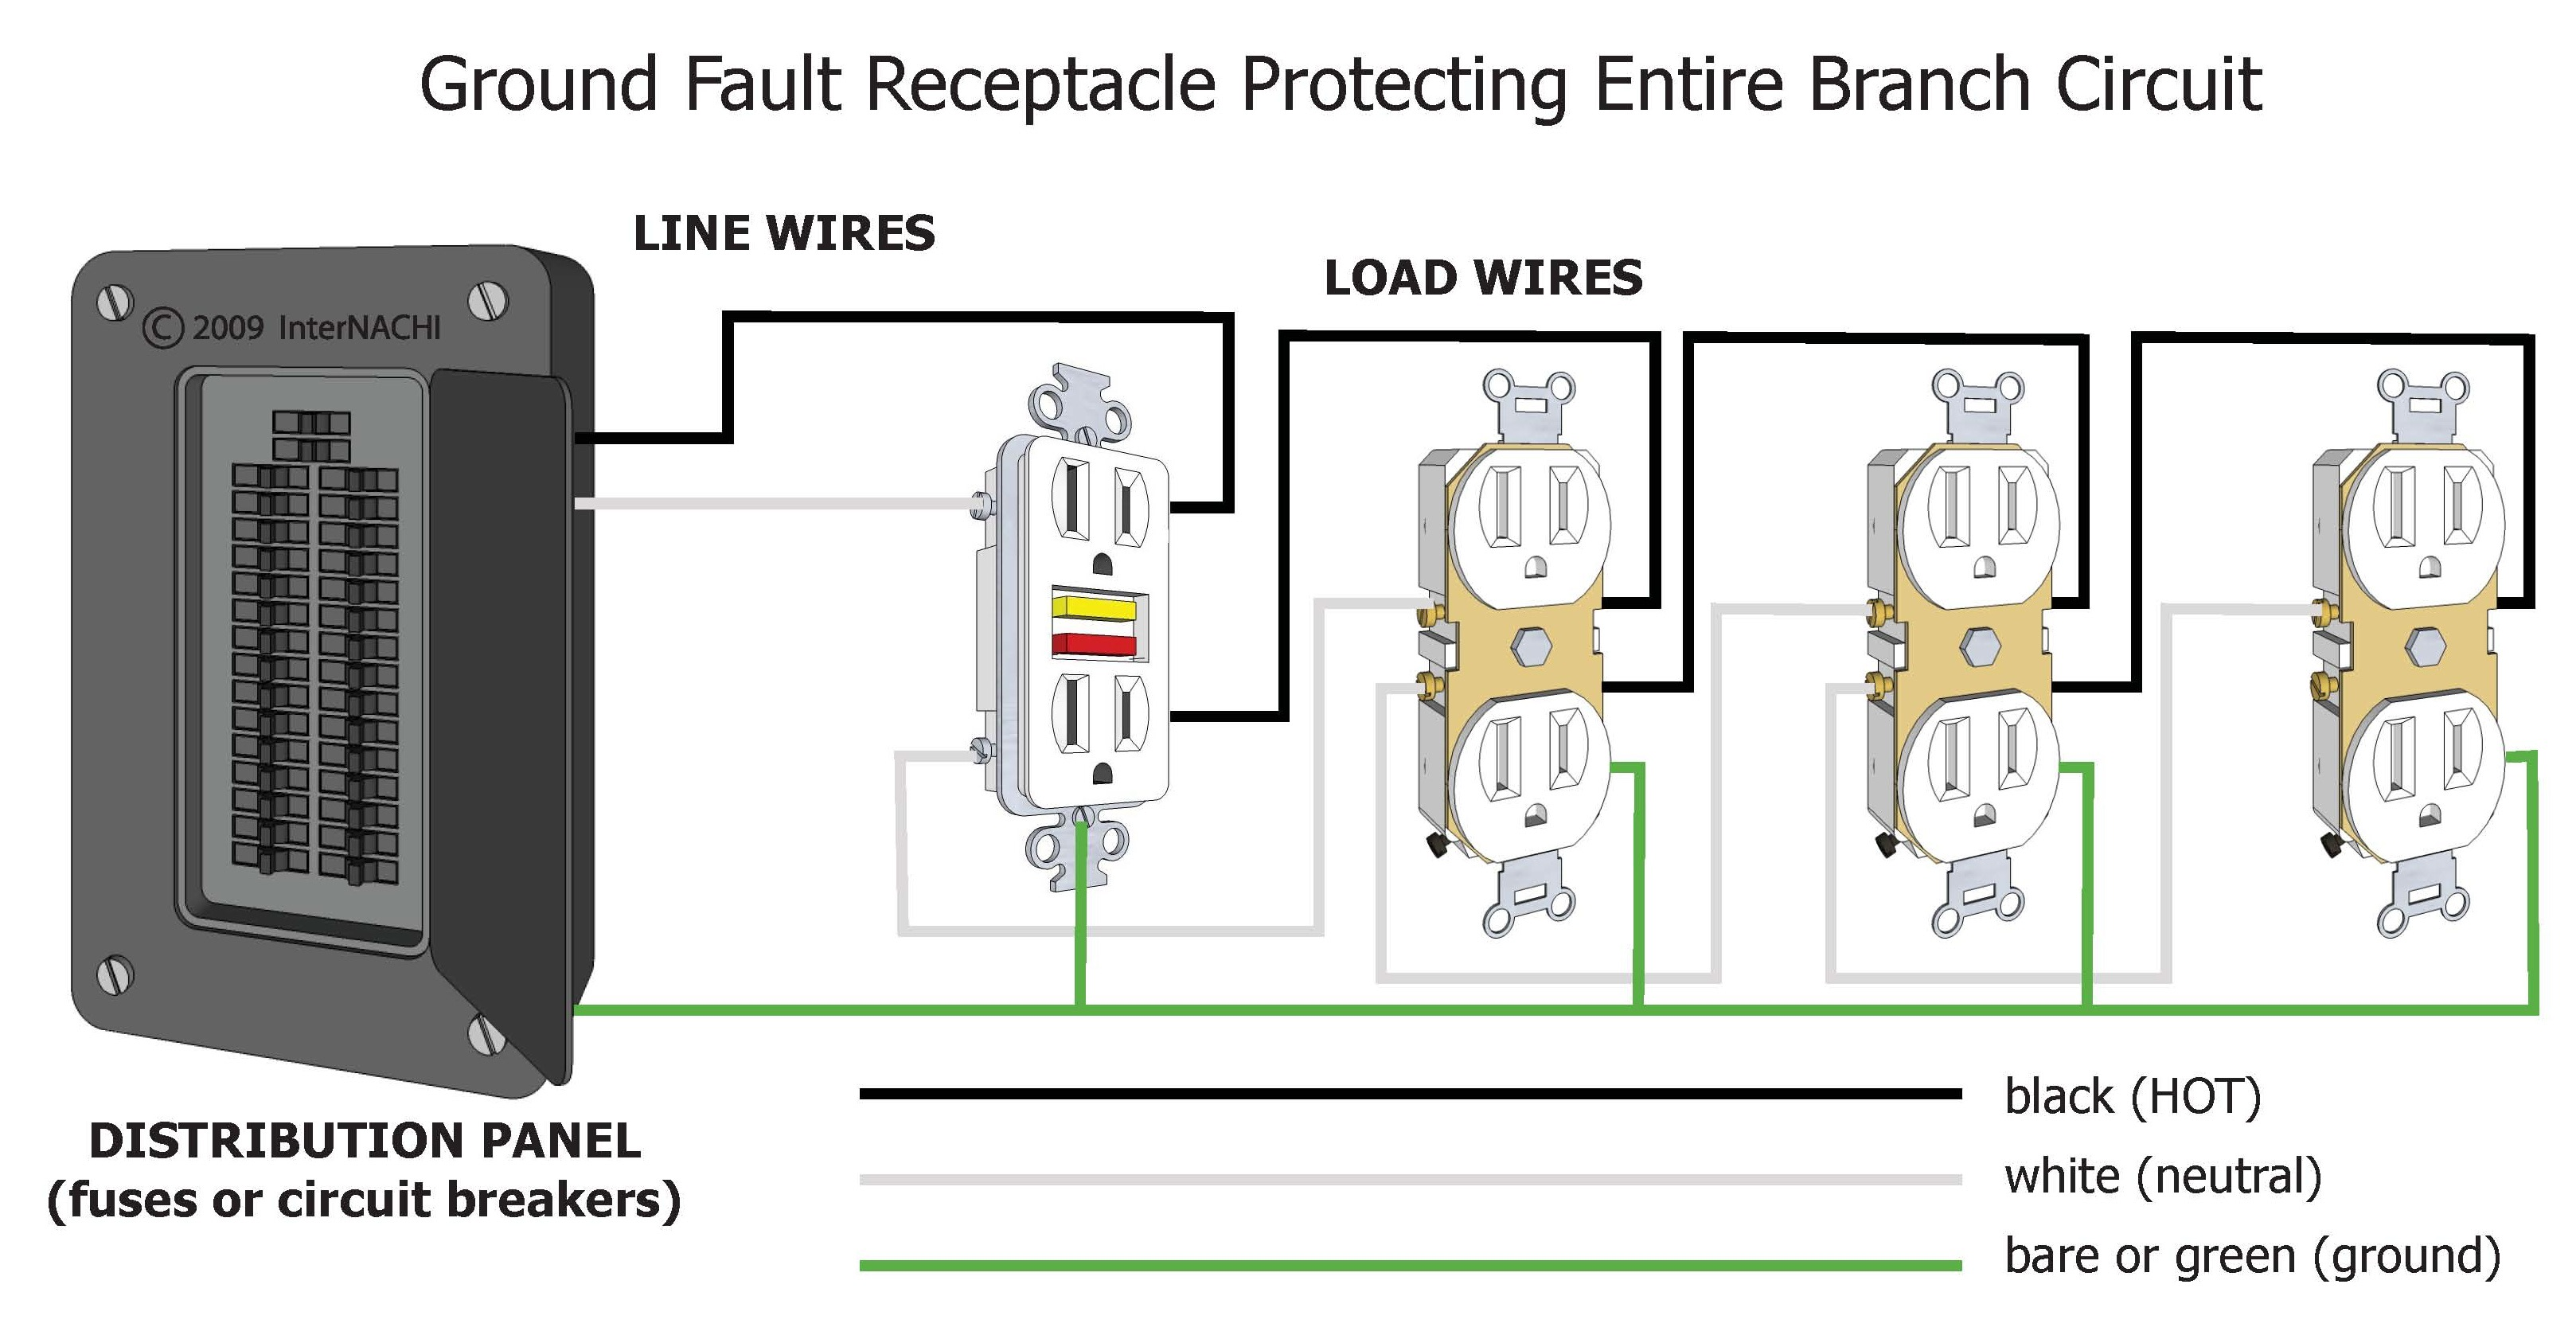 6 wire gfci schematic diagram wiring diagram 220 Circuit Breaker Wiring Diagram 6 wire gfci schematic diagram